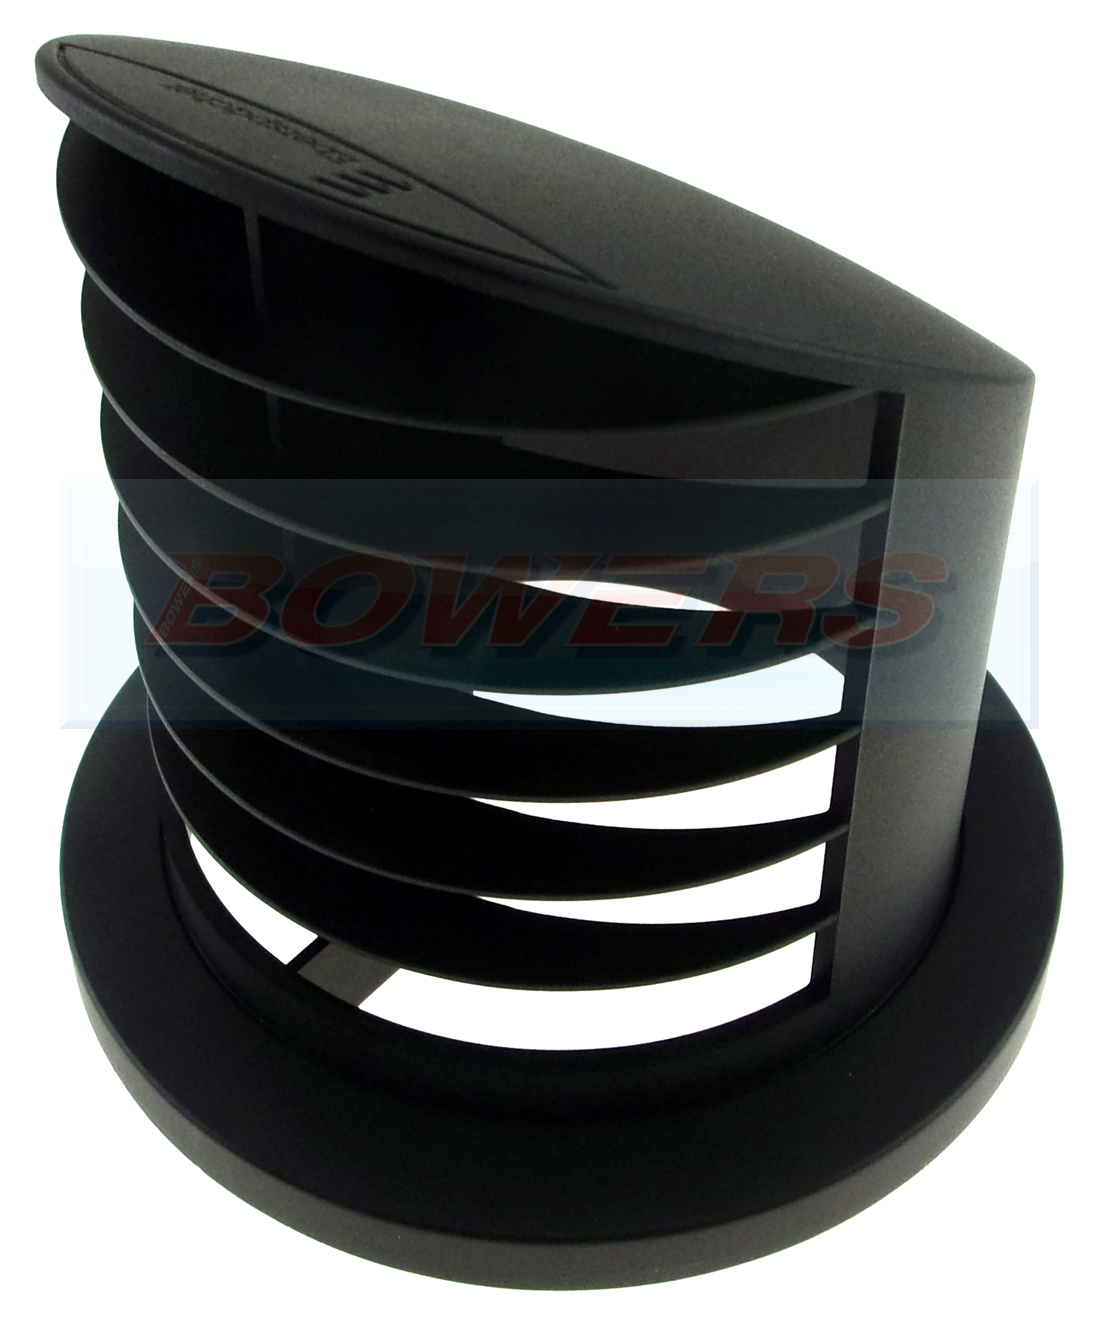 Heater Ducting Eberspacher Webasto Heater Rotating Floor Air Outlet For 75mm Or